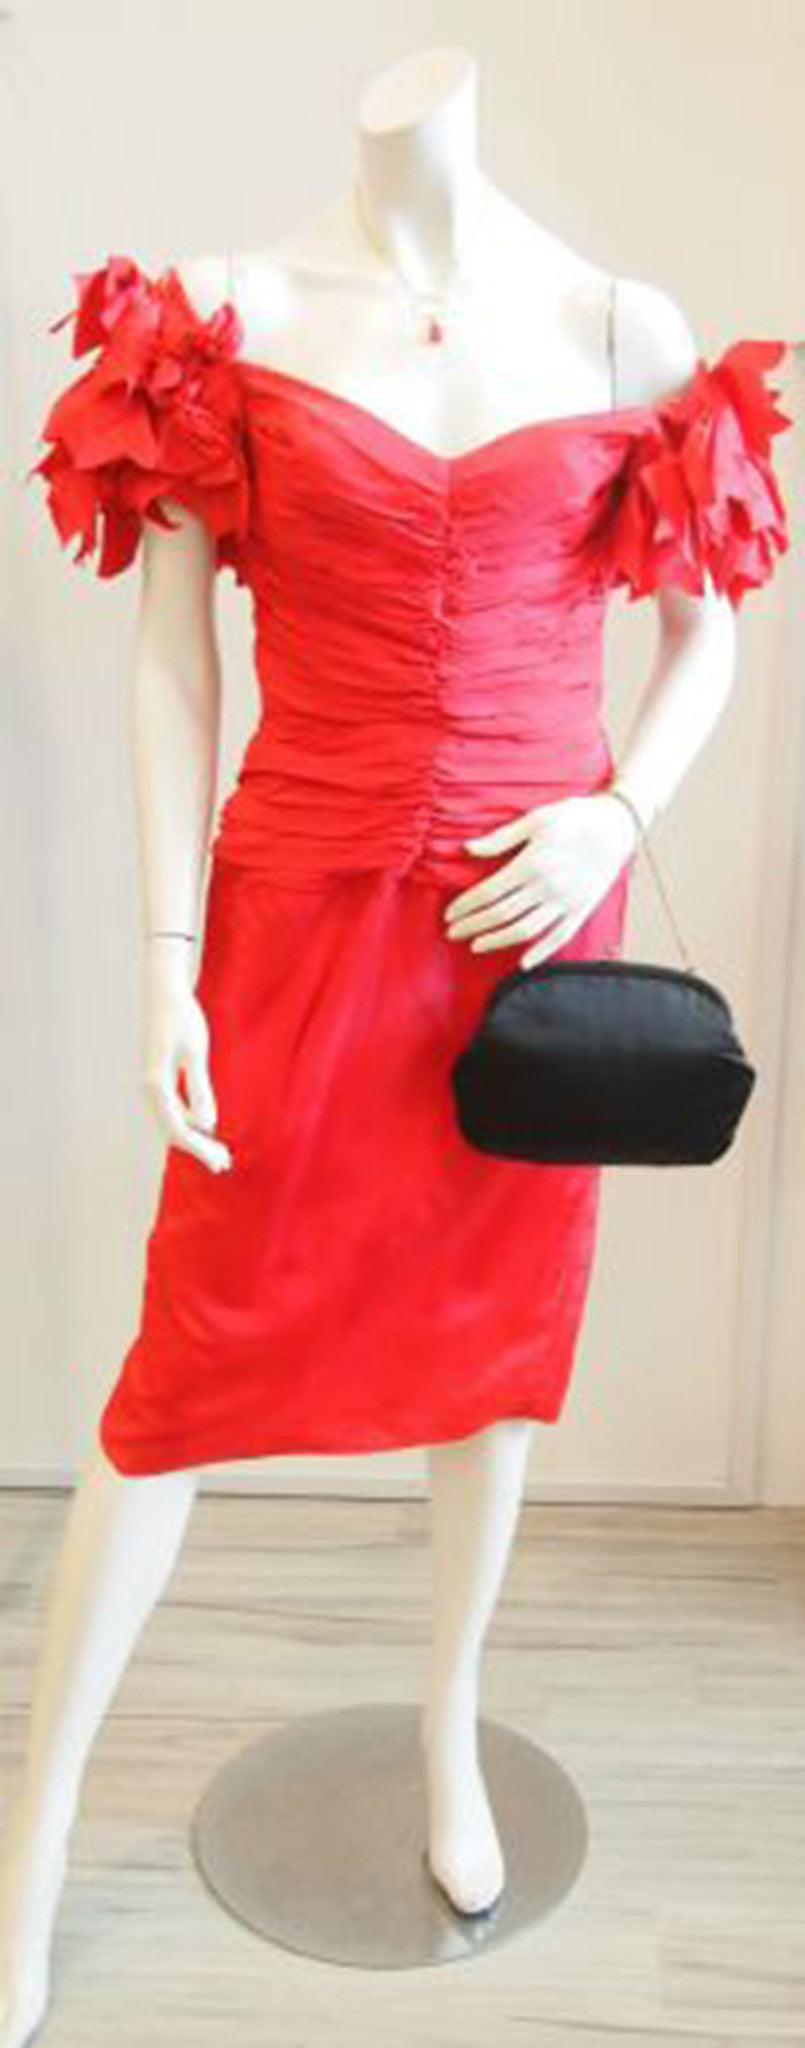 The Fiery Red Seniorita Vintage Cocktail Dress with Petal Sleeves